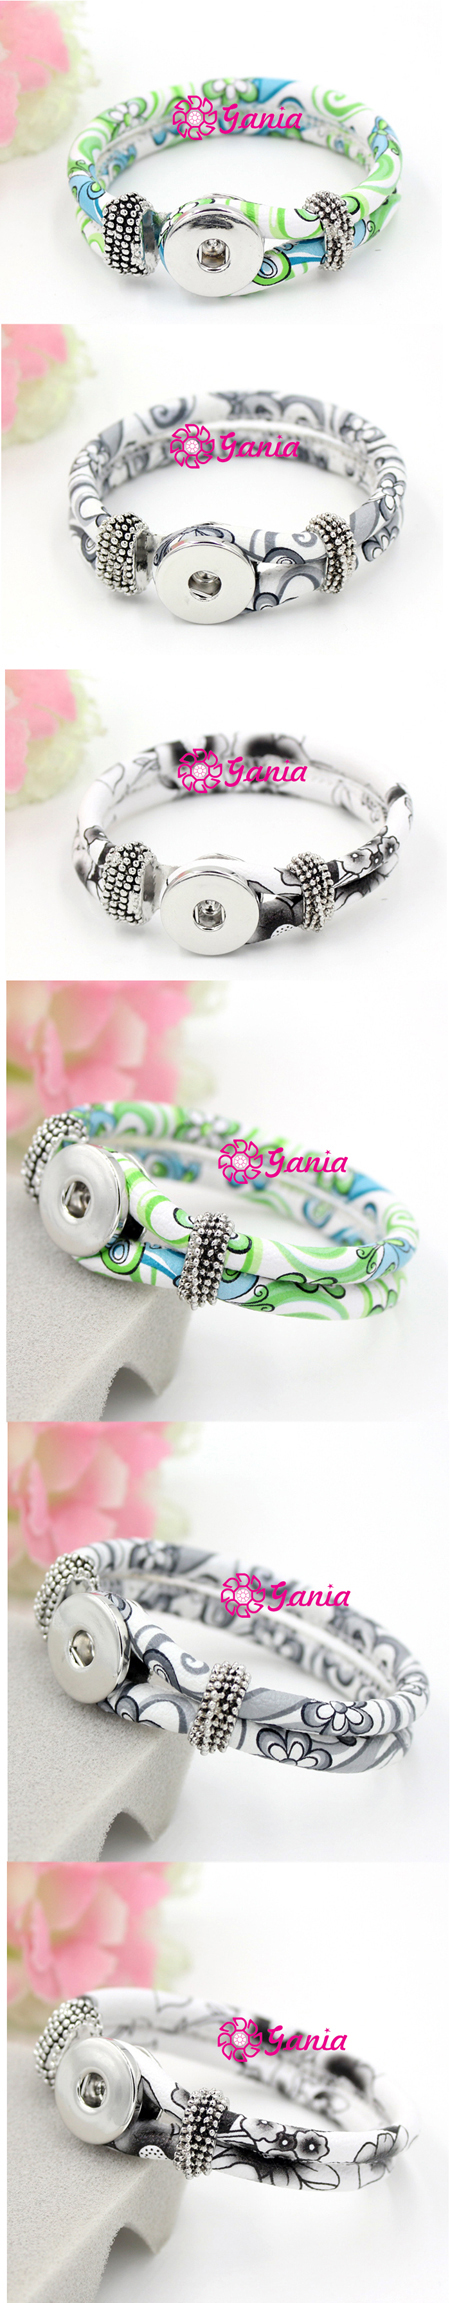 Fashion Interchangeable Flower Printed Leather Wrap Wrist Snap Leather Bracelet for DIY Button Jewelry